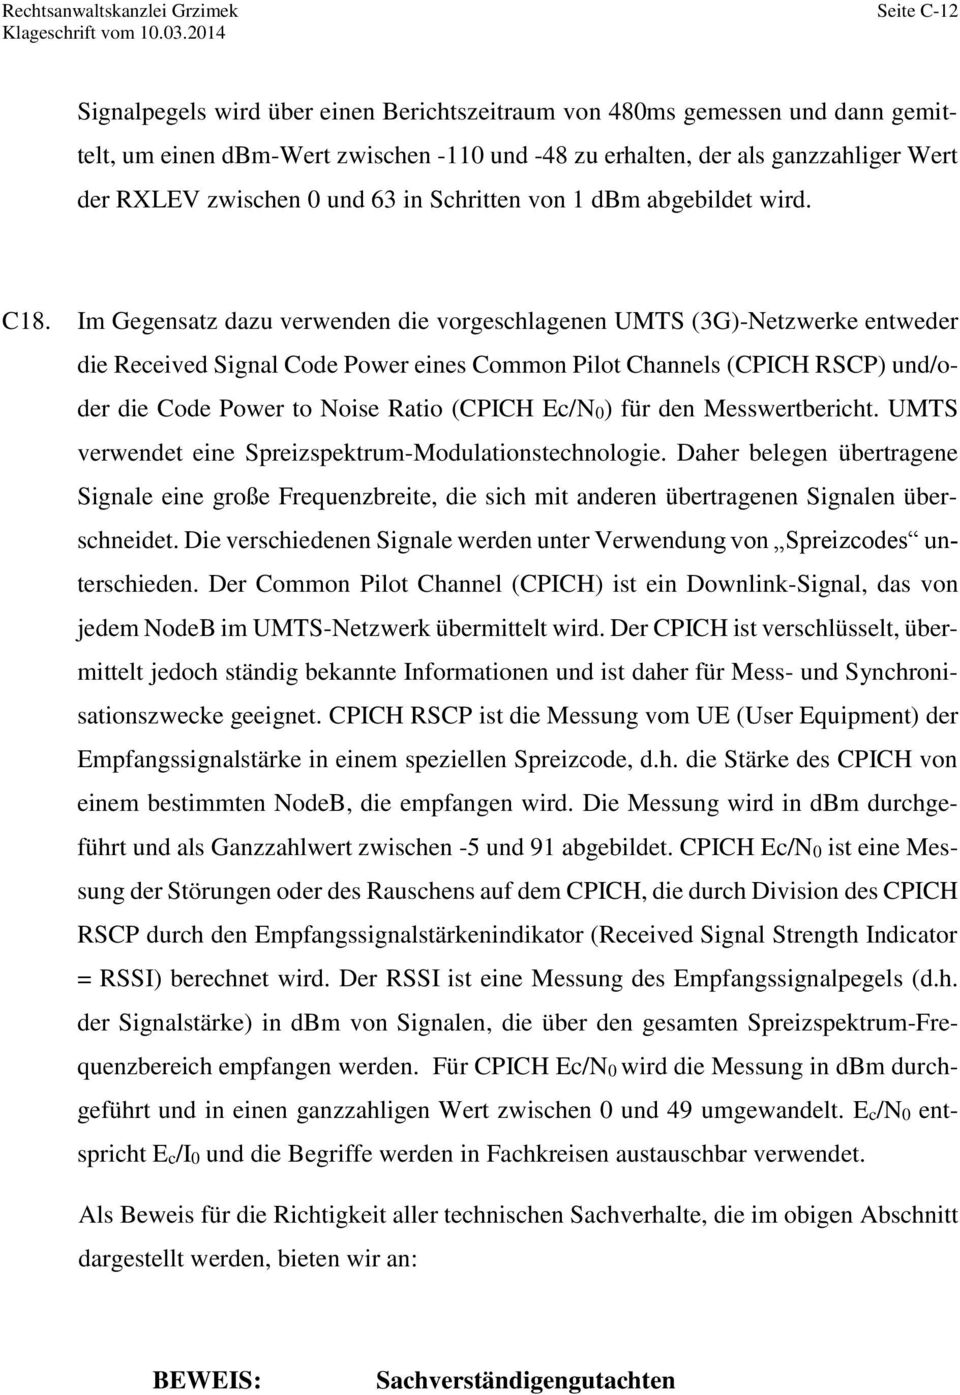 Im Gegensatz dazu verwenden die vorgeschlagenen UMTS (3G)-Netzwerke entweder die Received Signal Code Power eines Common Pilot Channels (CPICH RSCP) und/oder die Code Power to Noise Ratio (CPICH